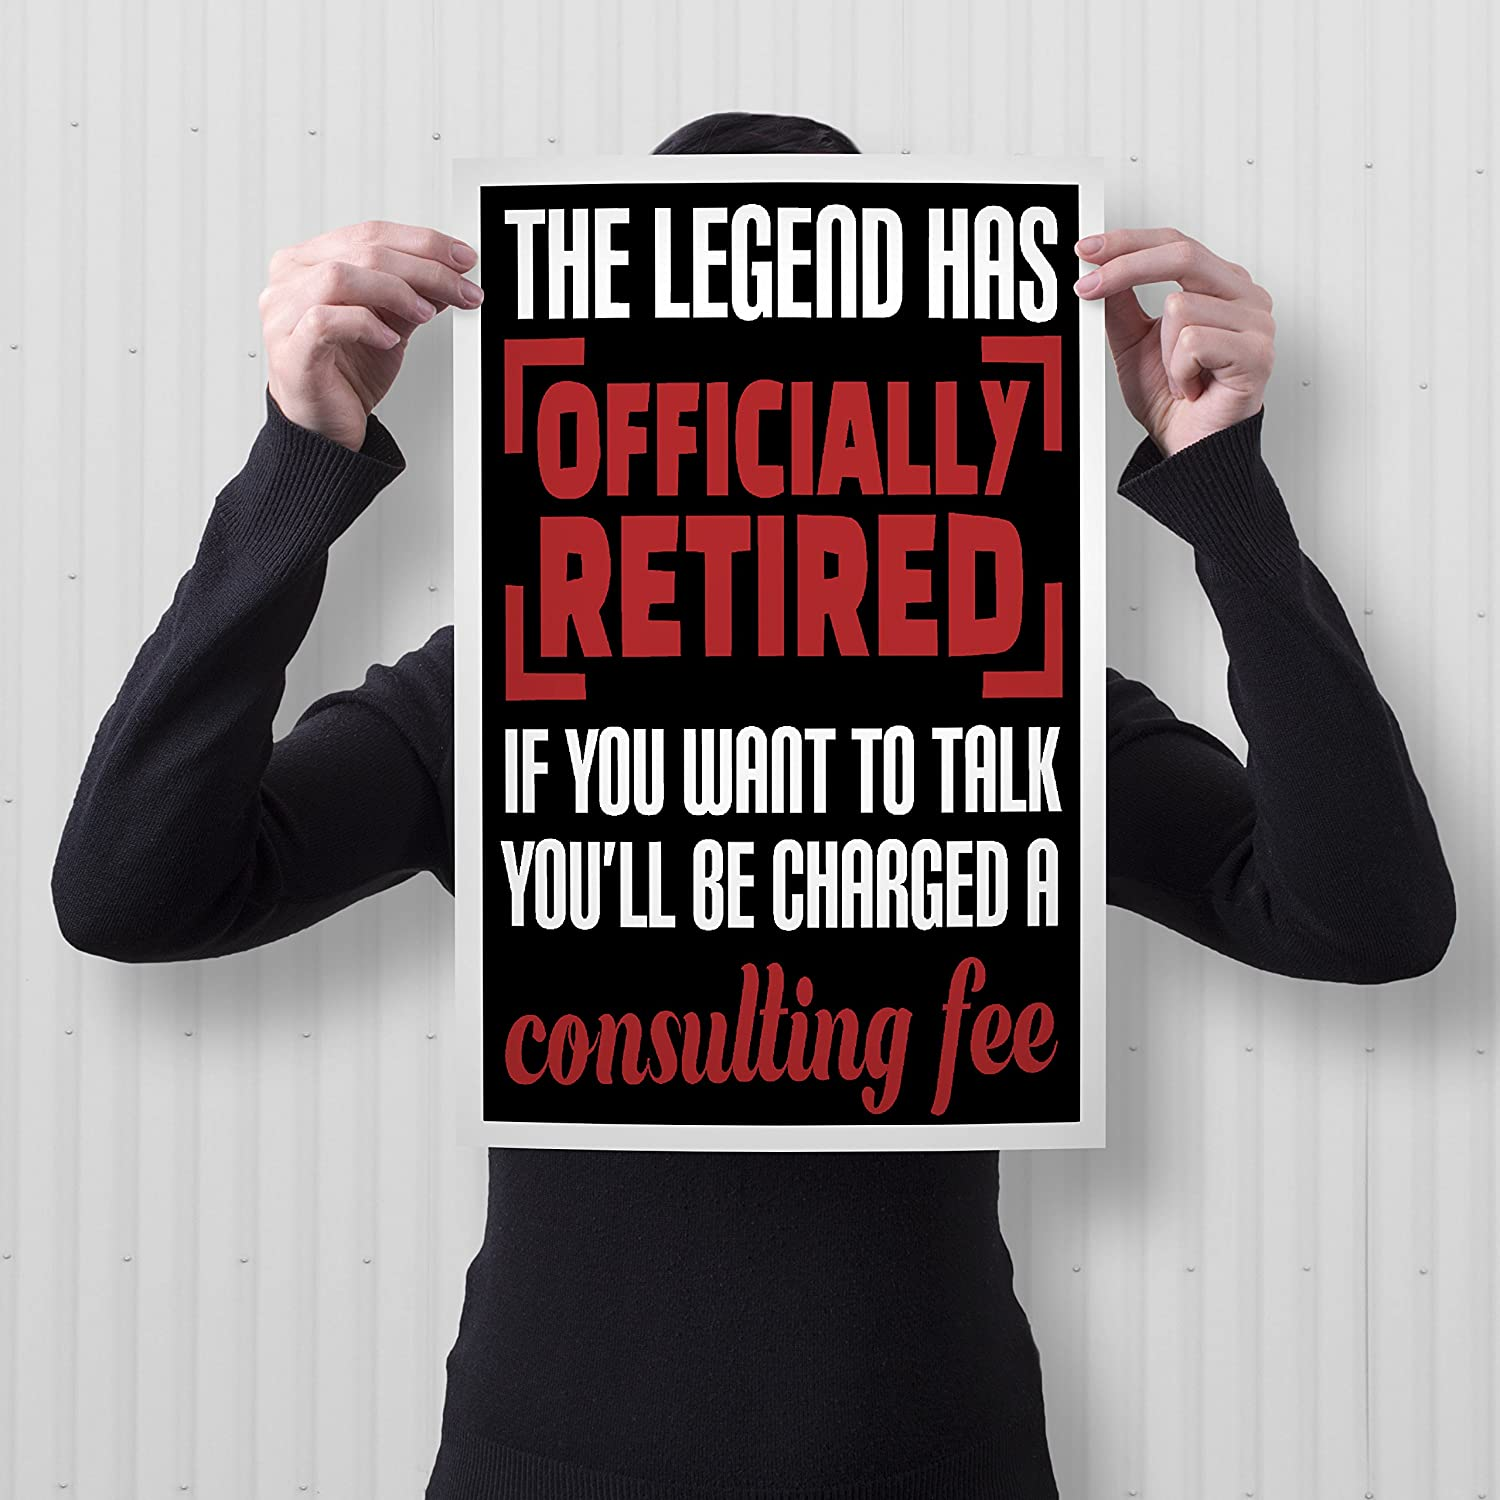 12 x 18 Includes White .5 White Border Spitzys The Legend Has Officially Retired Poster